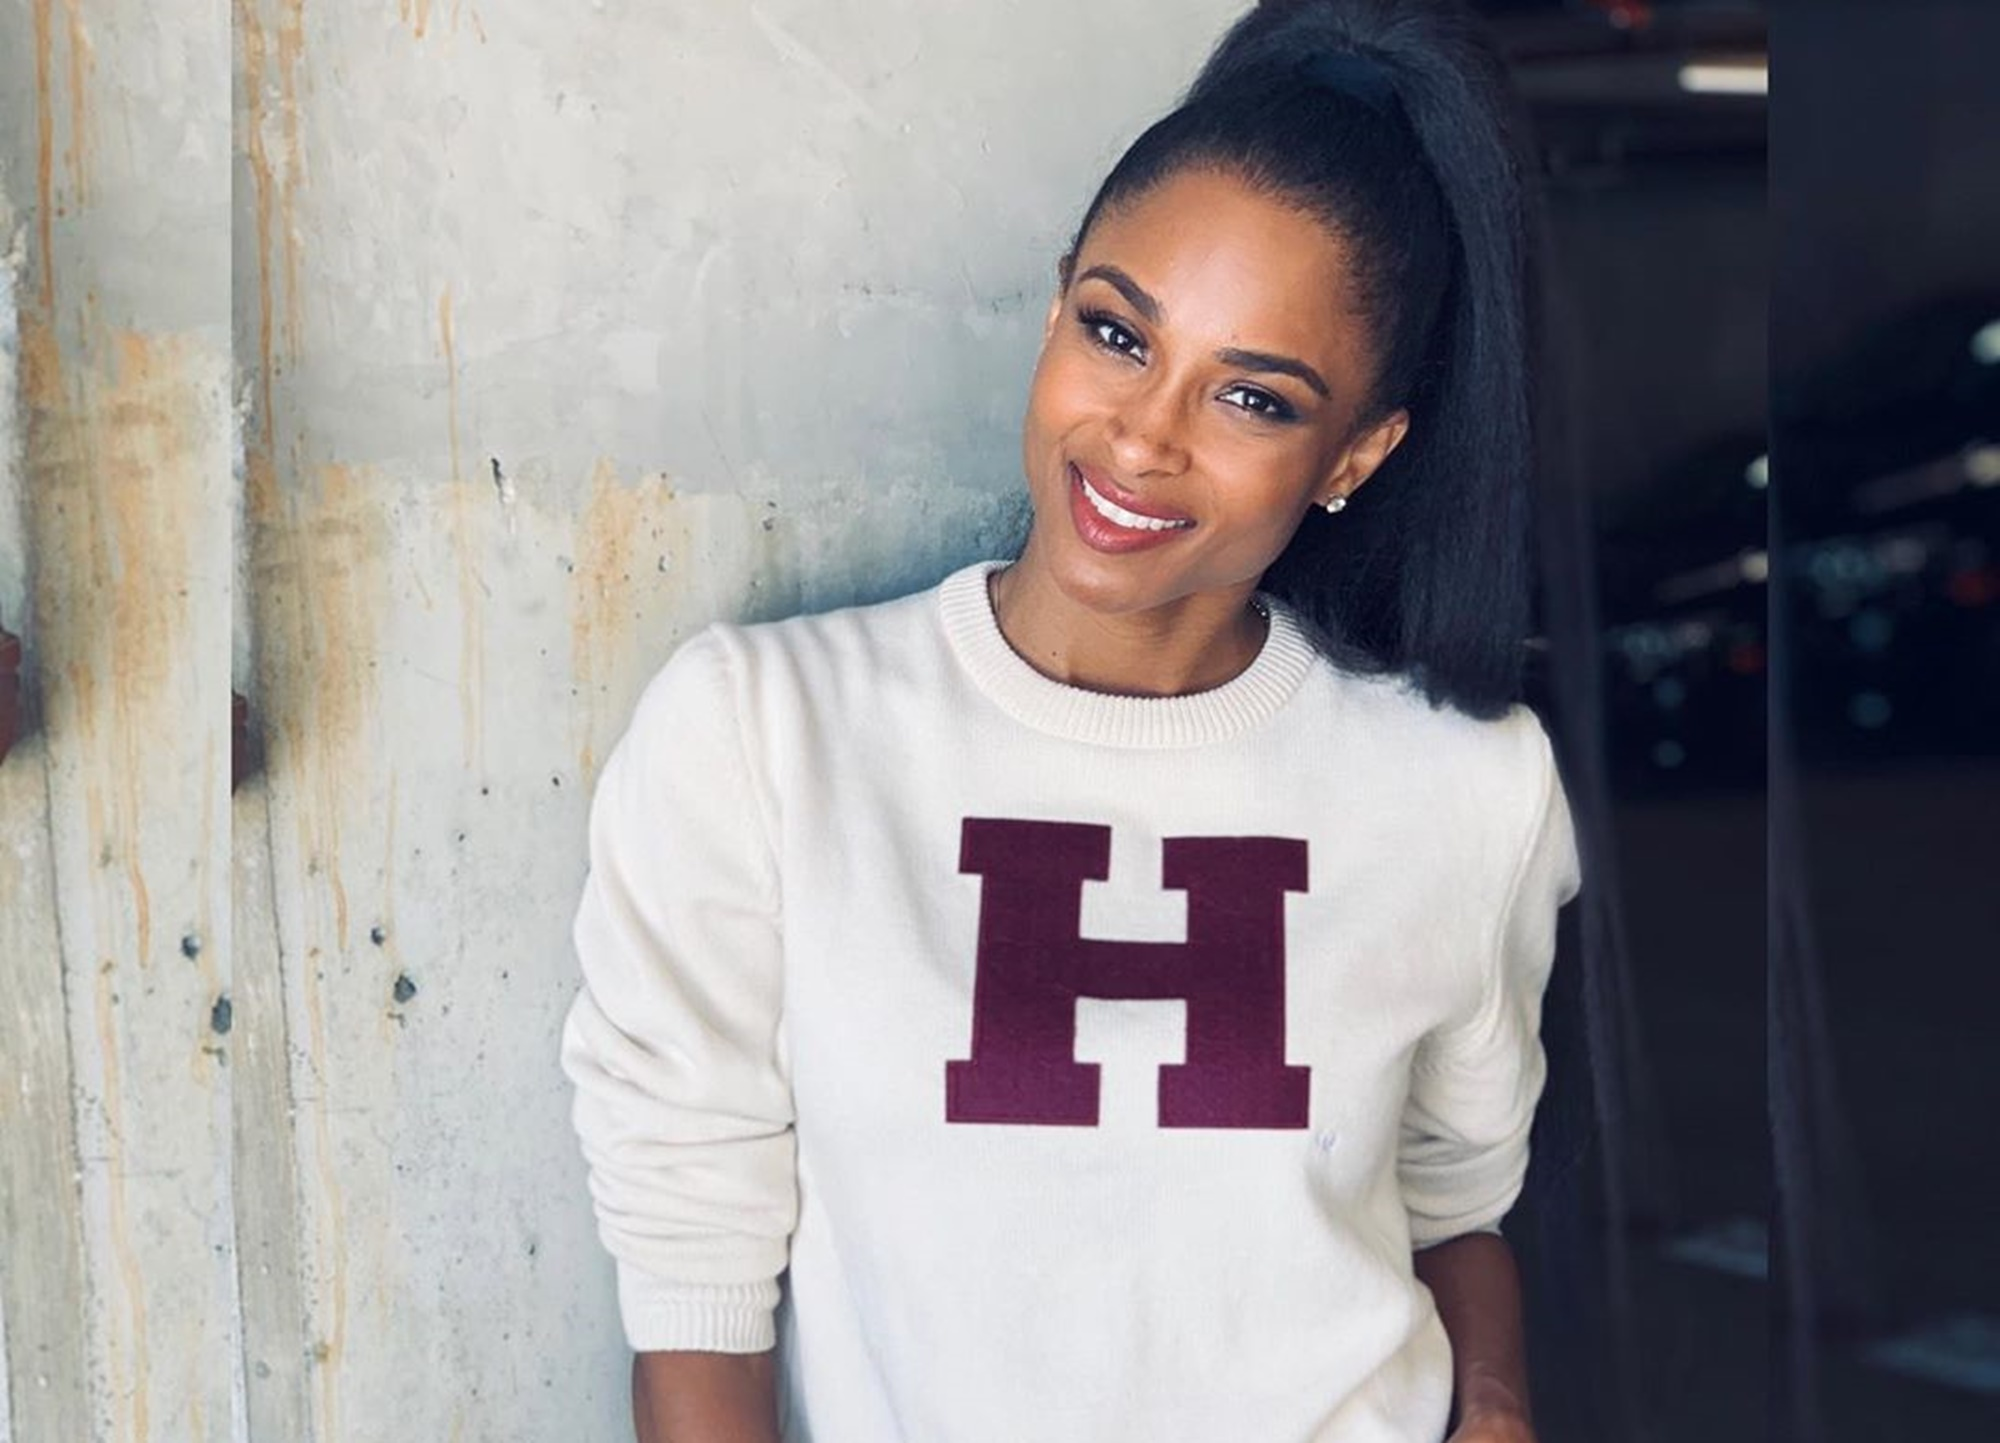 ciara-is-heading-to-harvard-to-take-on-the-business-world-with-sweet-picture-russell-wilson-is-over-the-moon-as-she-aims-to-win-the-future